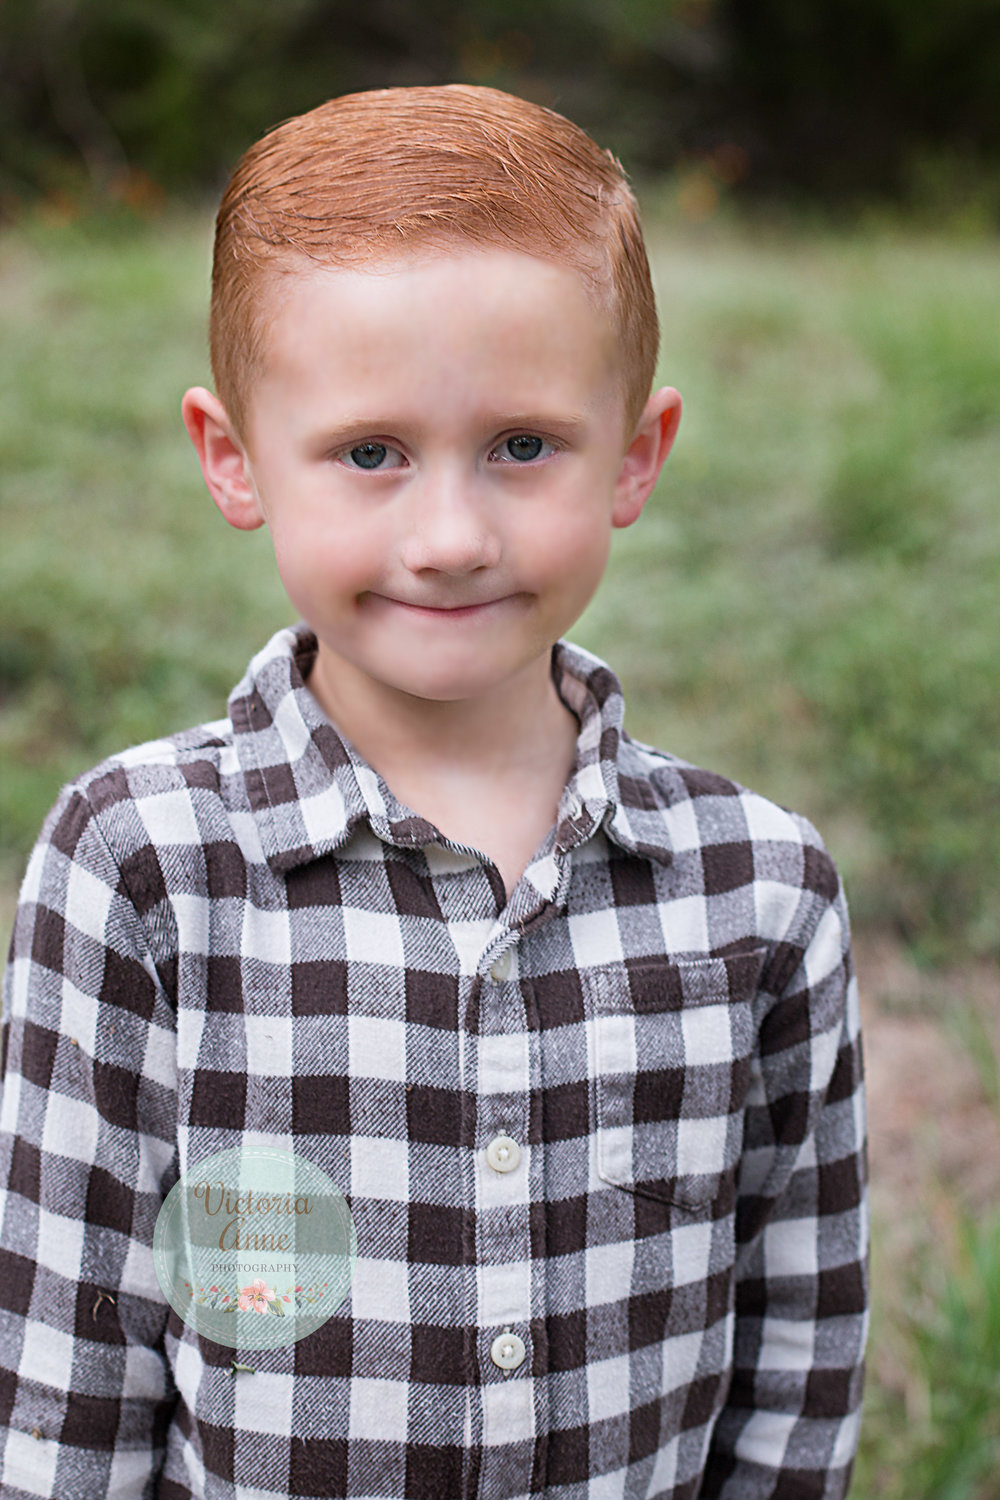 Fox Connor - He started 1st grade, football, and loves being a big brother.